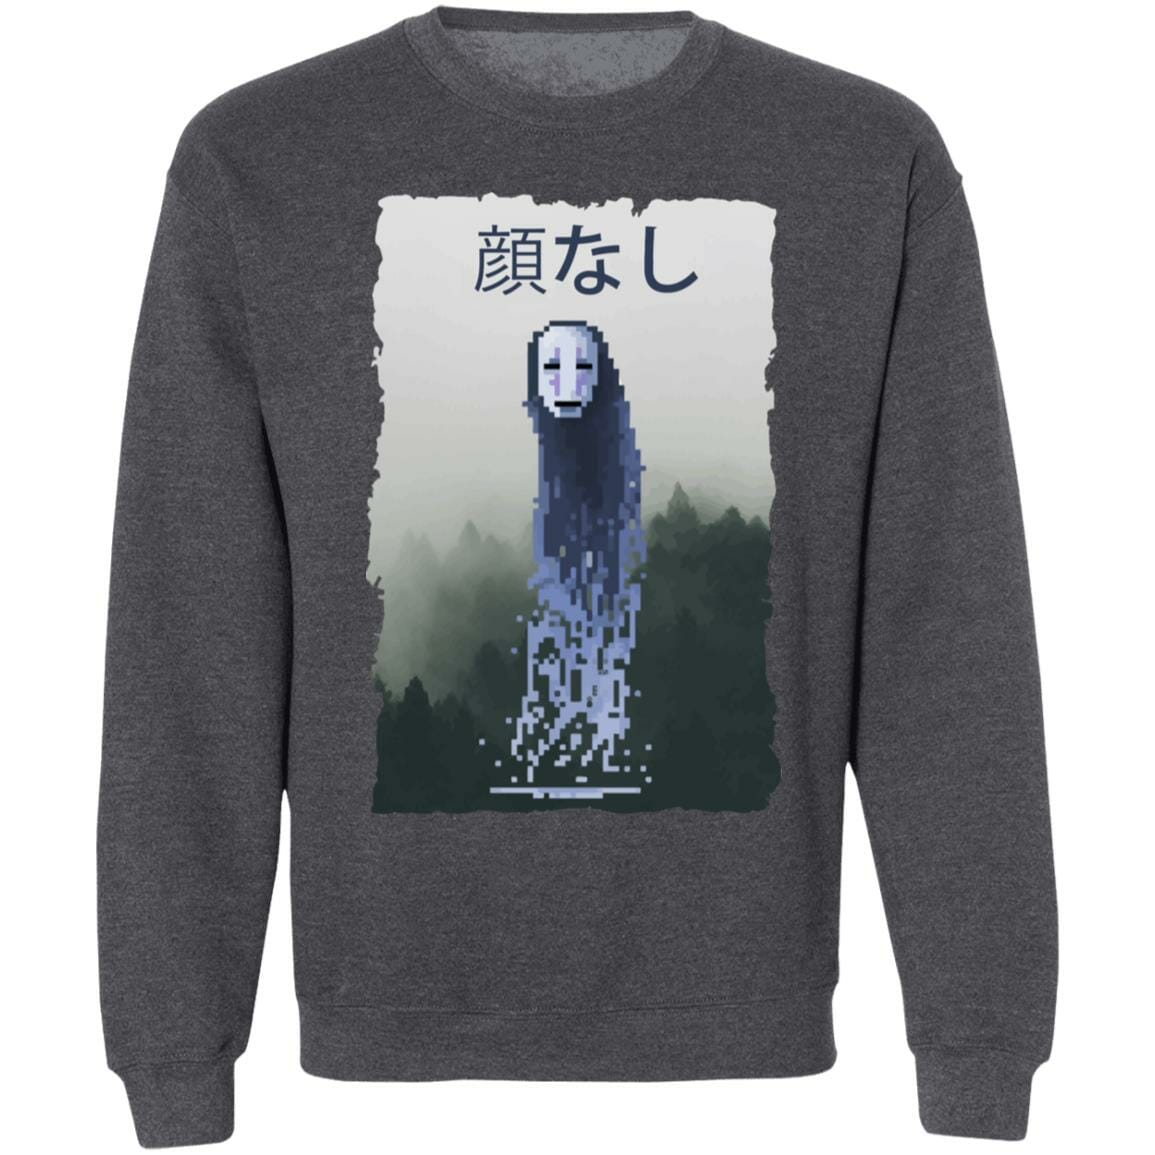 Spirited Away No Face Kaonashi 8bit Sweatshirt